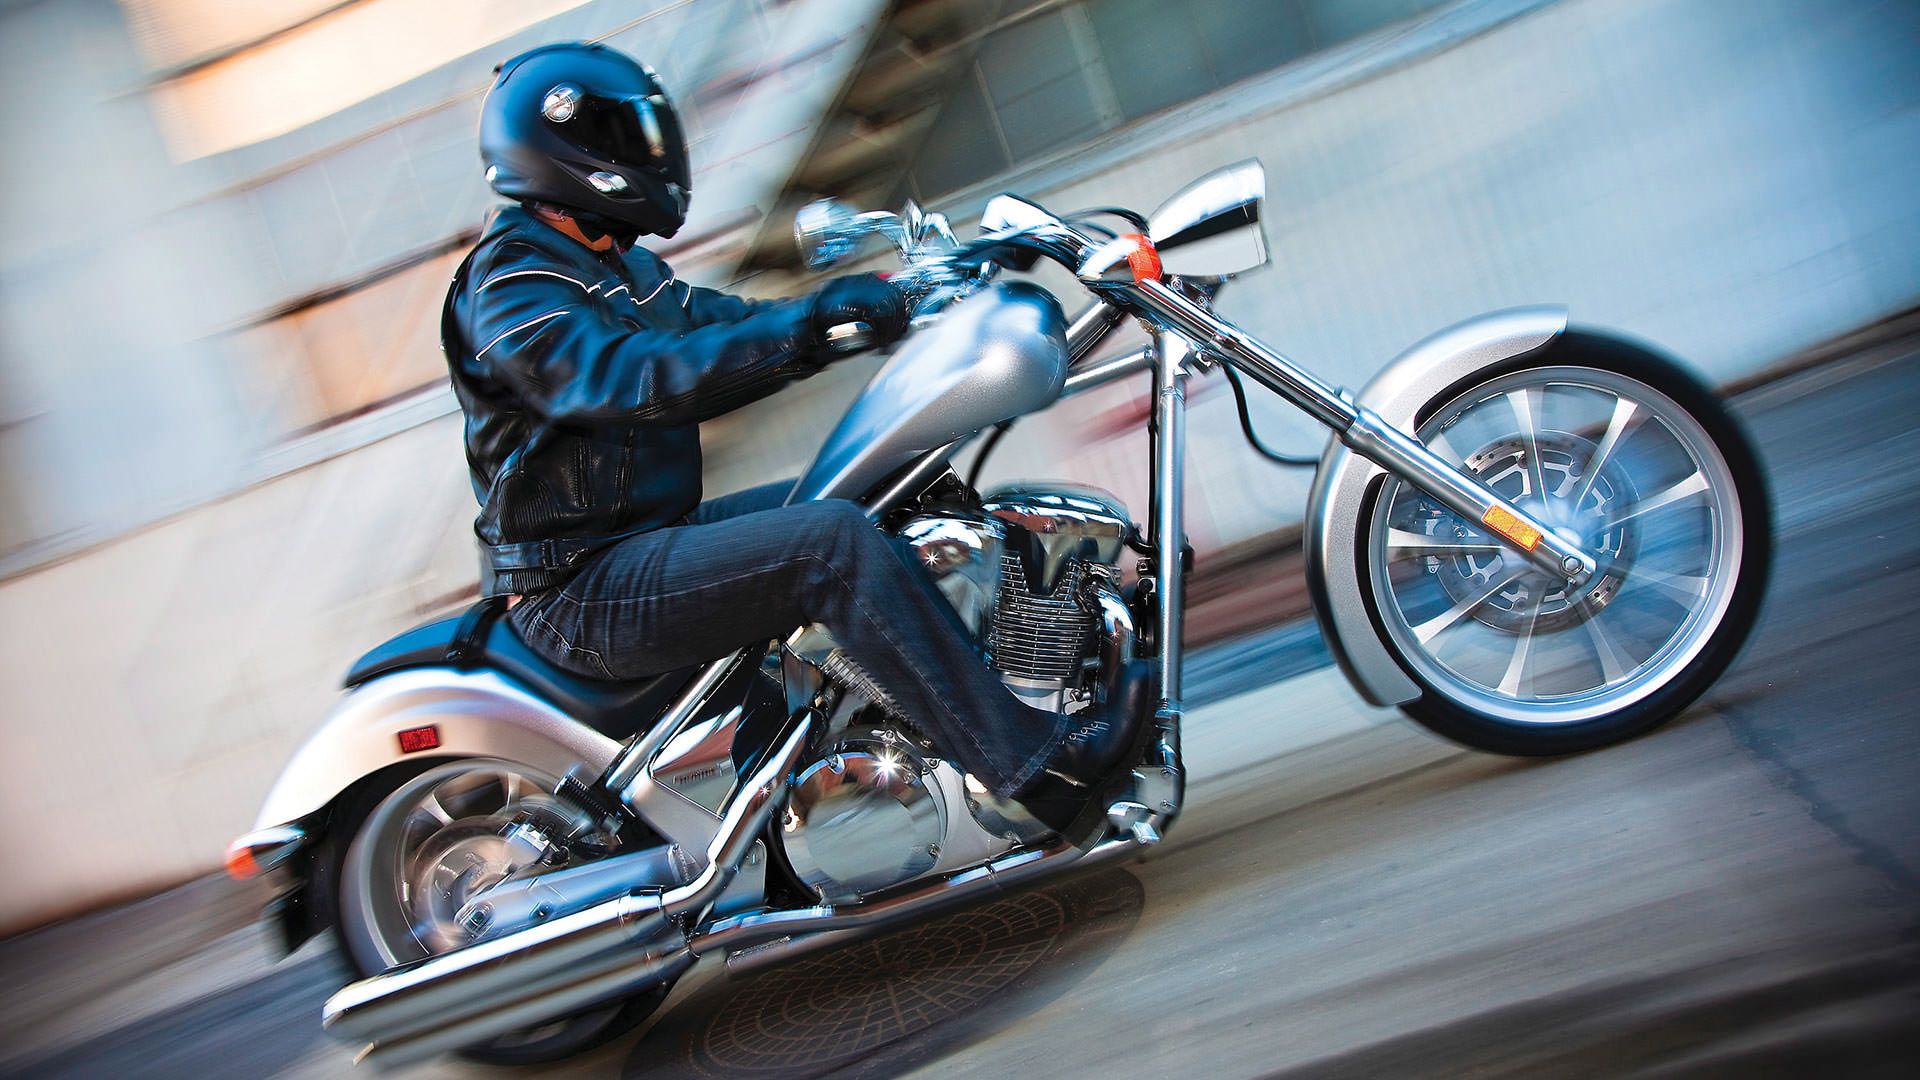 2017 Honda Fury 1300 Review Specs Features Changes Easy 13 Wire Diagram For Chopper Development Story Cruiser Motorcycle